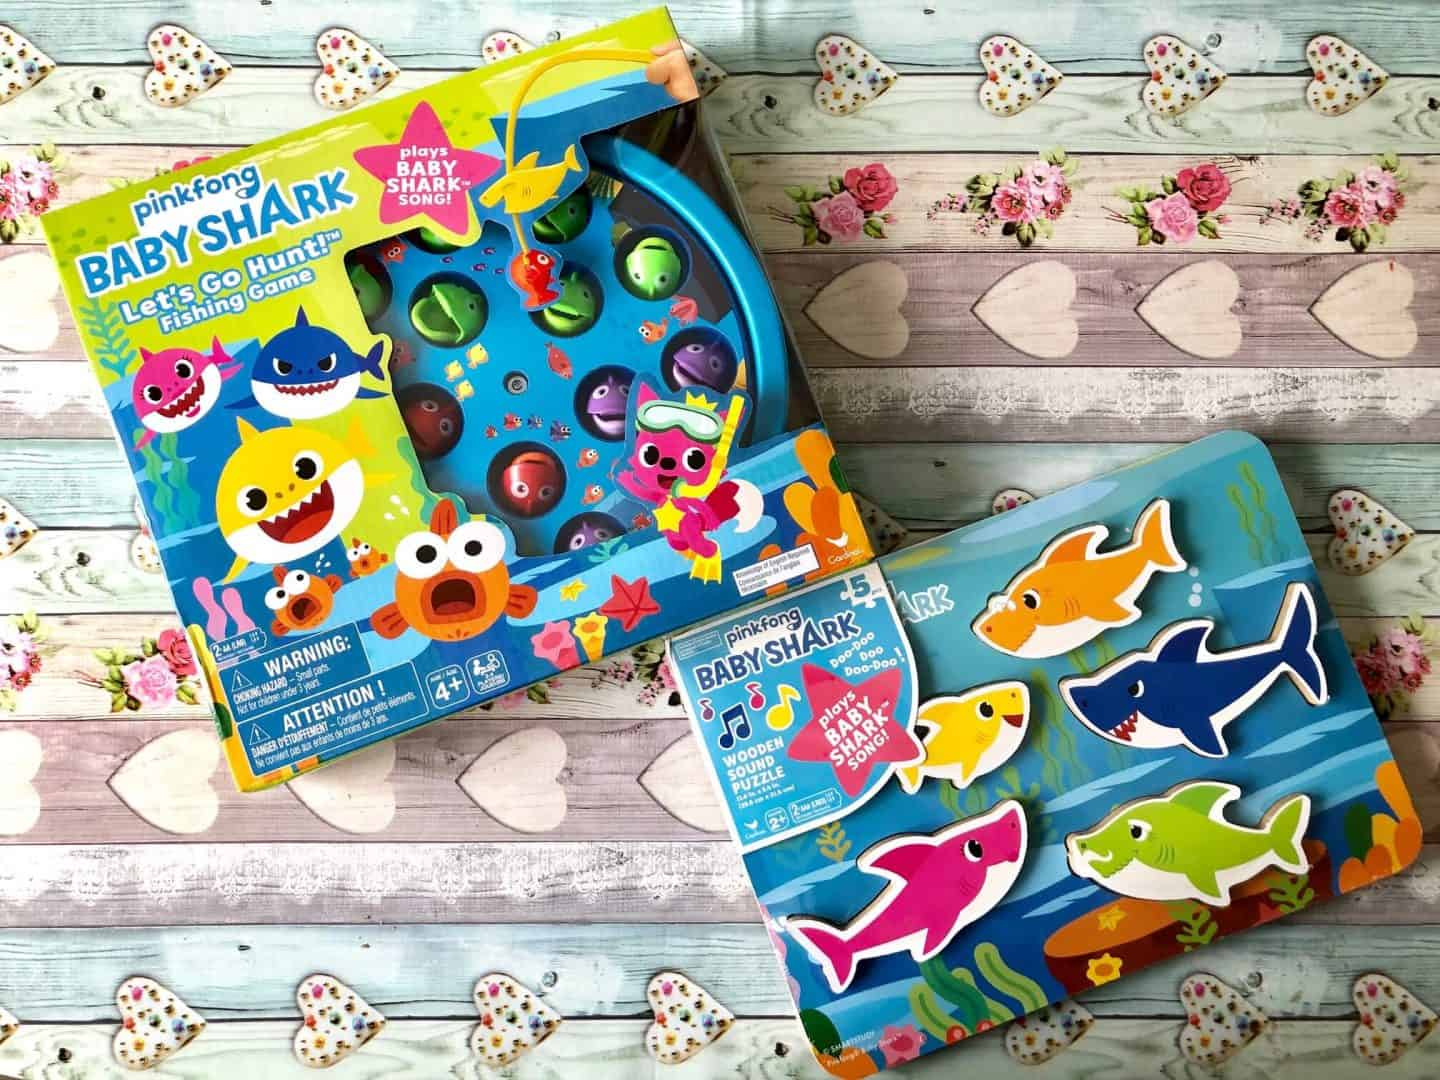 Baby Shark Let's Go Hunt game and Baby Shark Wooden Sound Puzzle